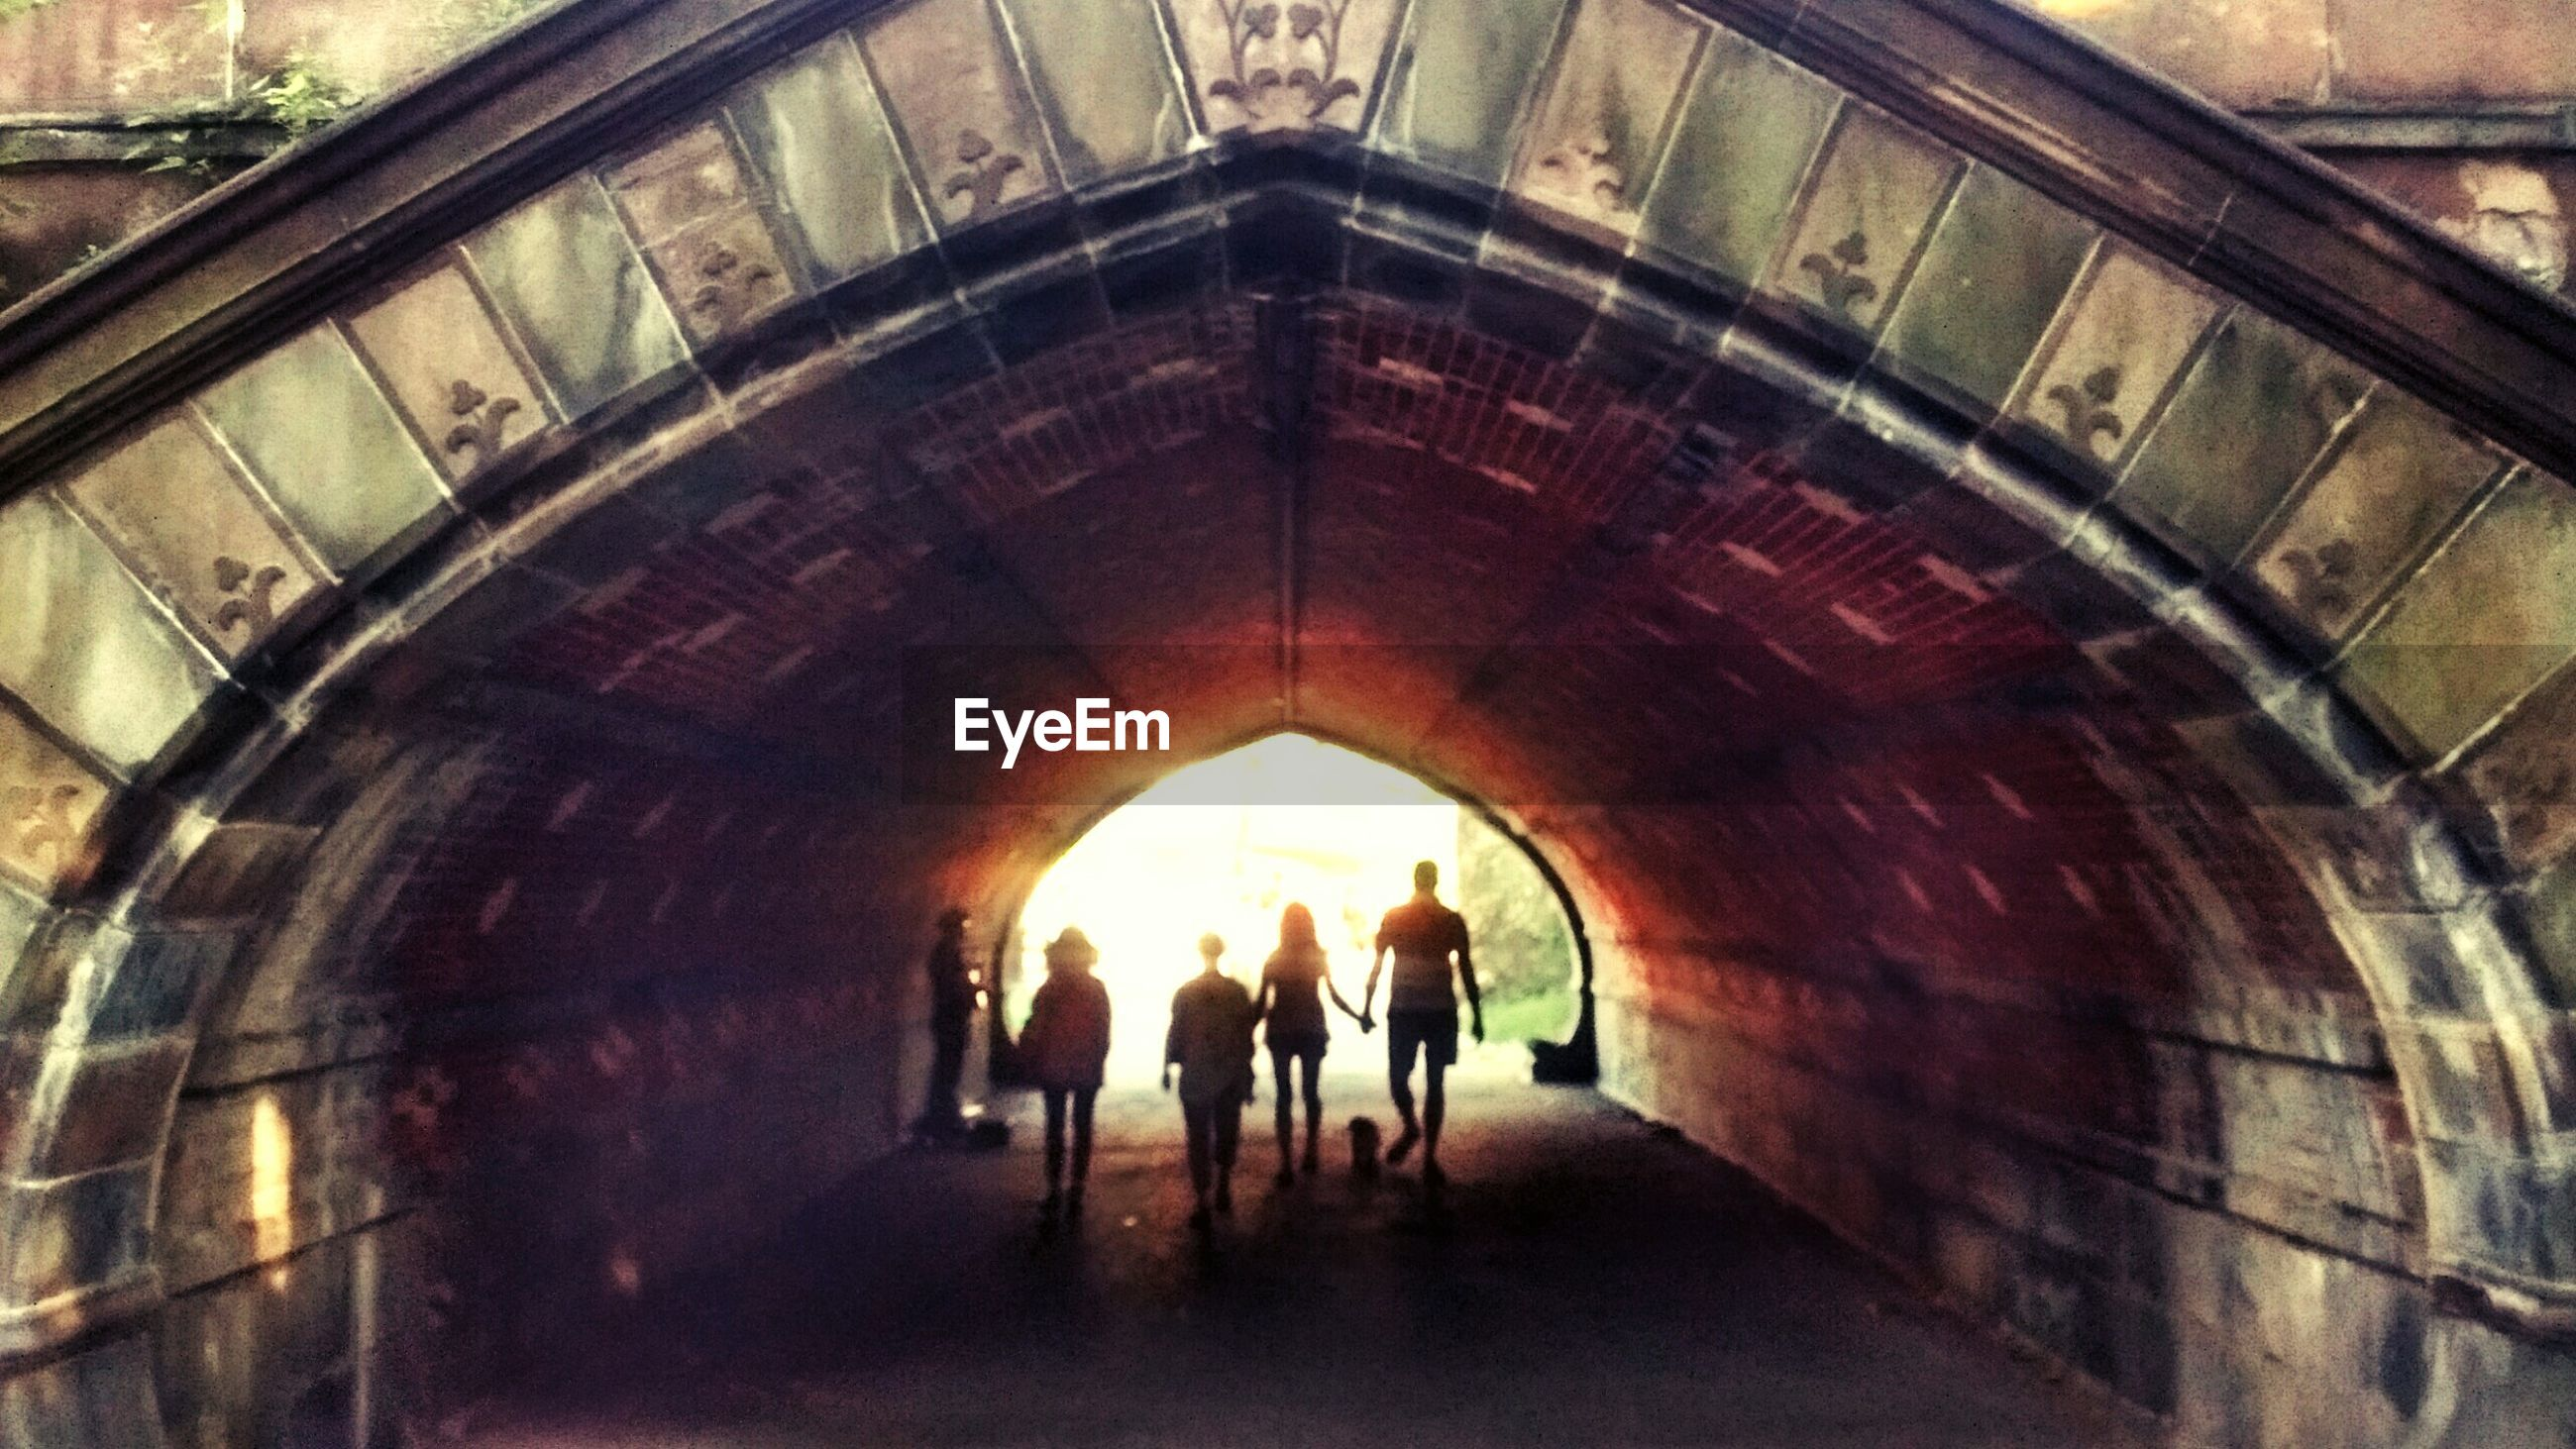 indoors, lifestyles, men, tunnel, full length, arch, leisure activity, person, walking, architecture, rear view, built structure, ceiling, togetherness, the way forward, standing, wall - building feature, illuminated